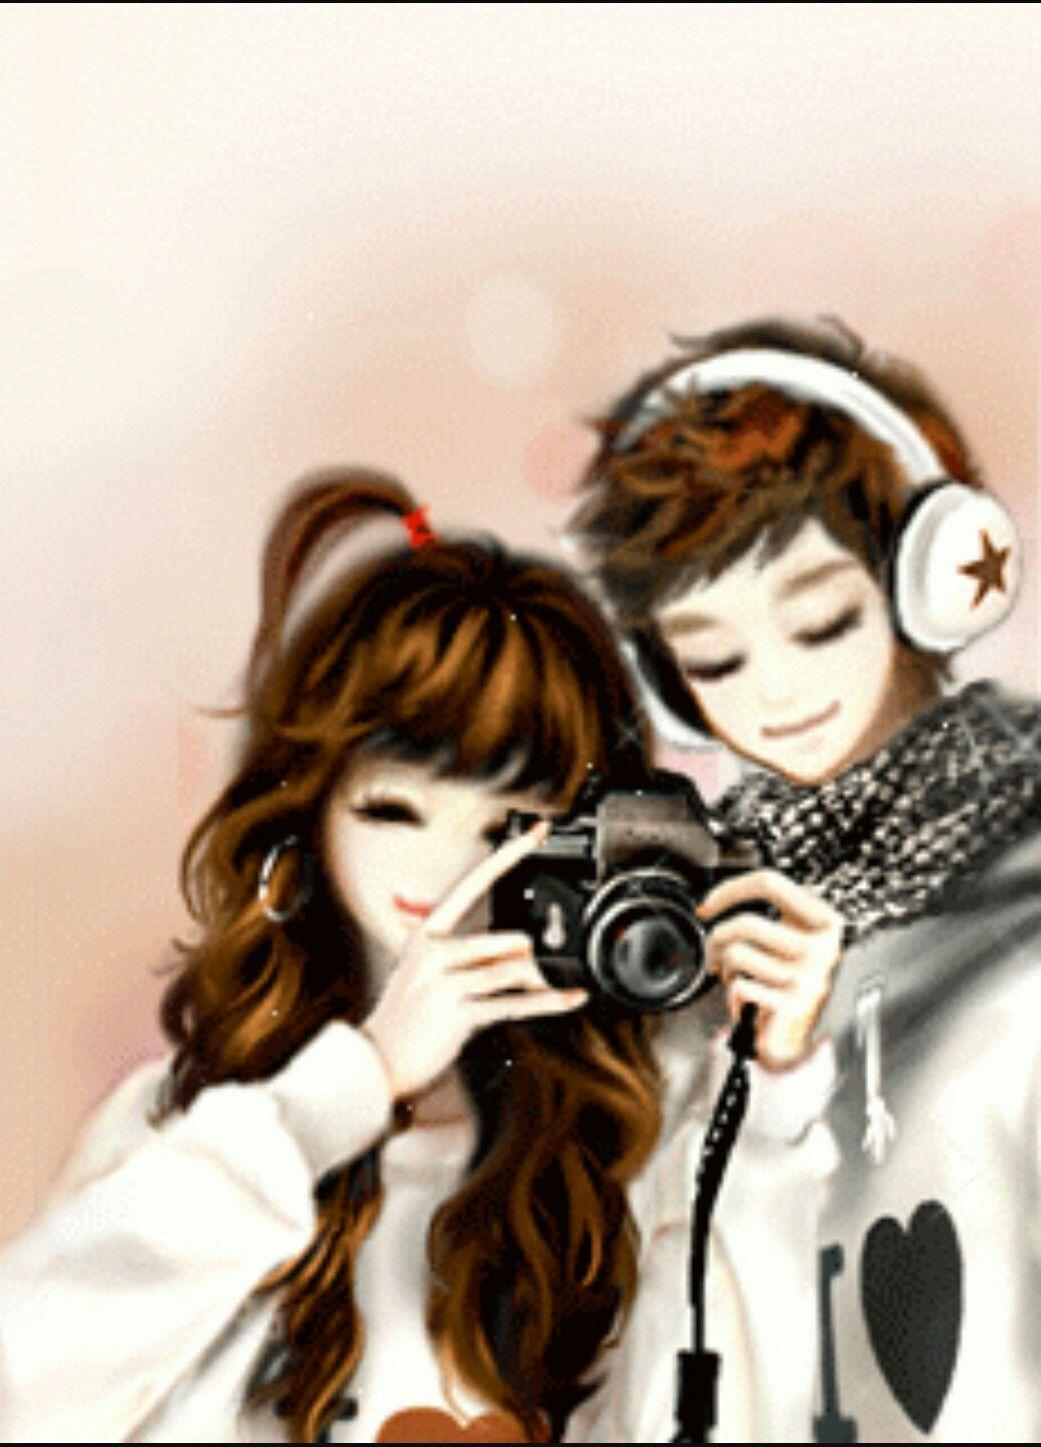 Korean Hd Anime Couple Love Music Wallpapers Wallpaper Cave